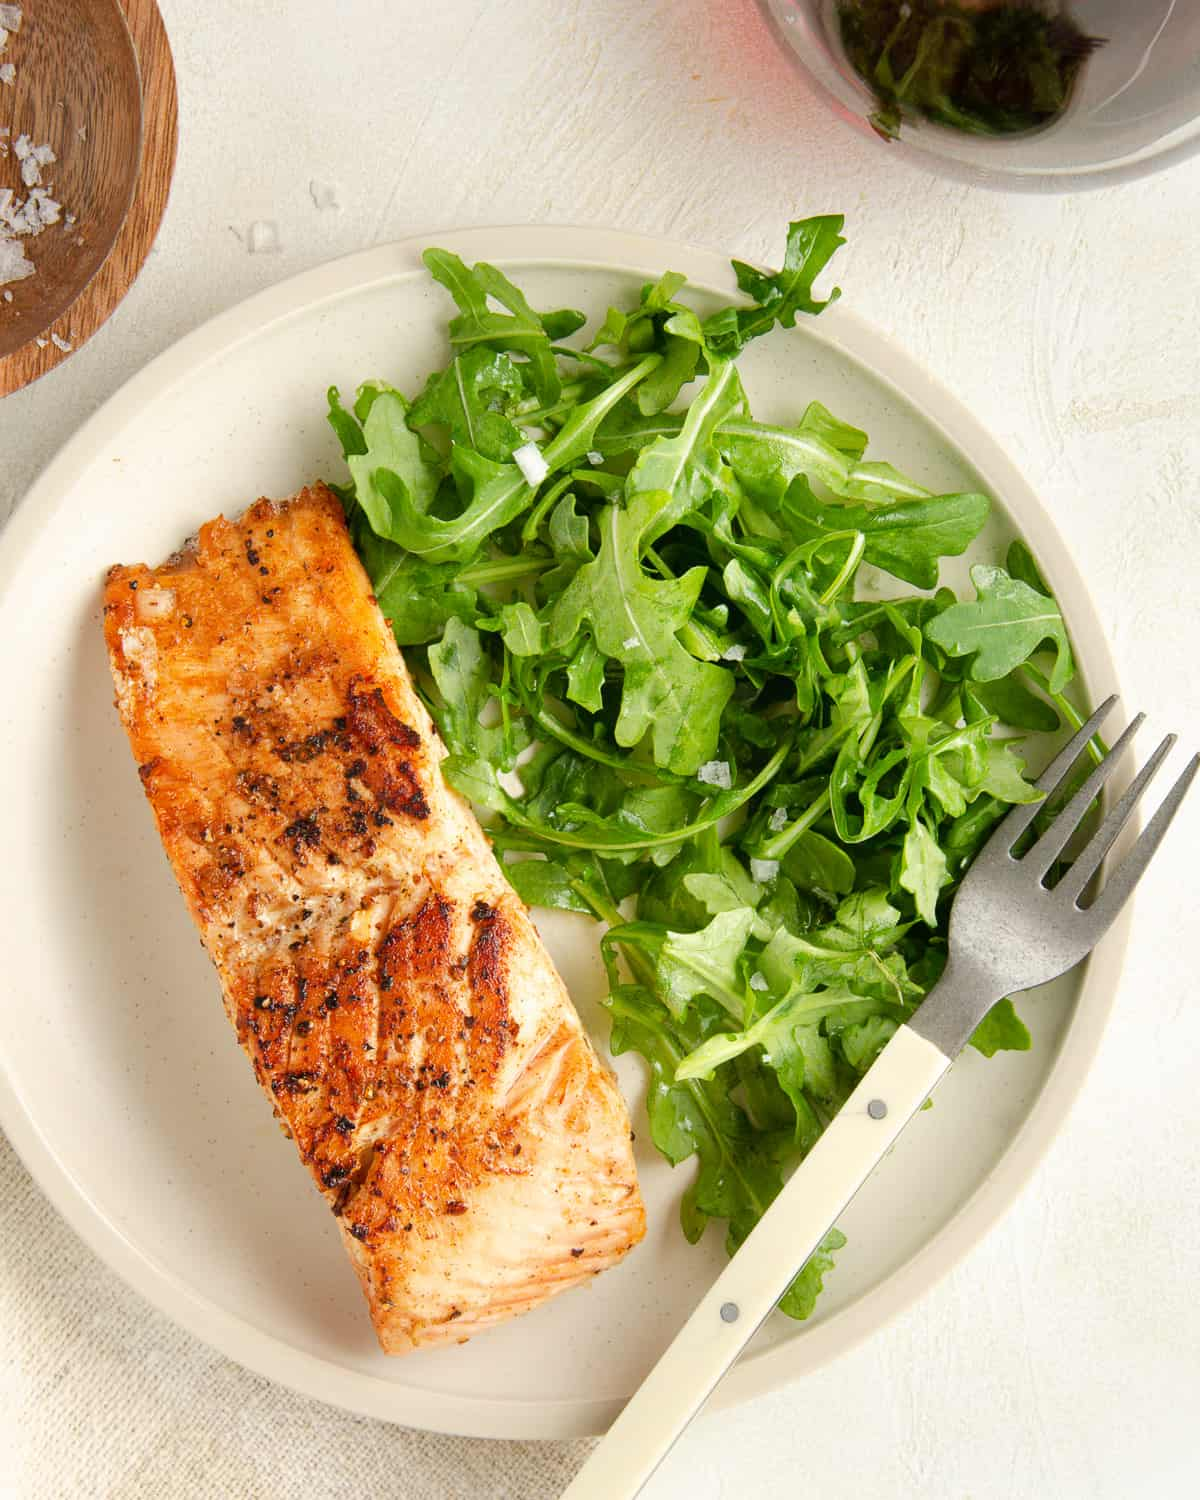 A plate of arugula with a filet of salmon.